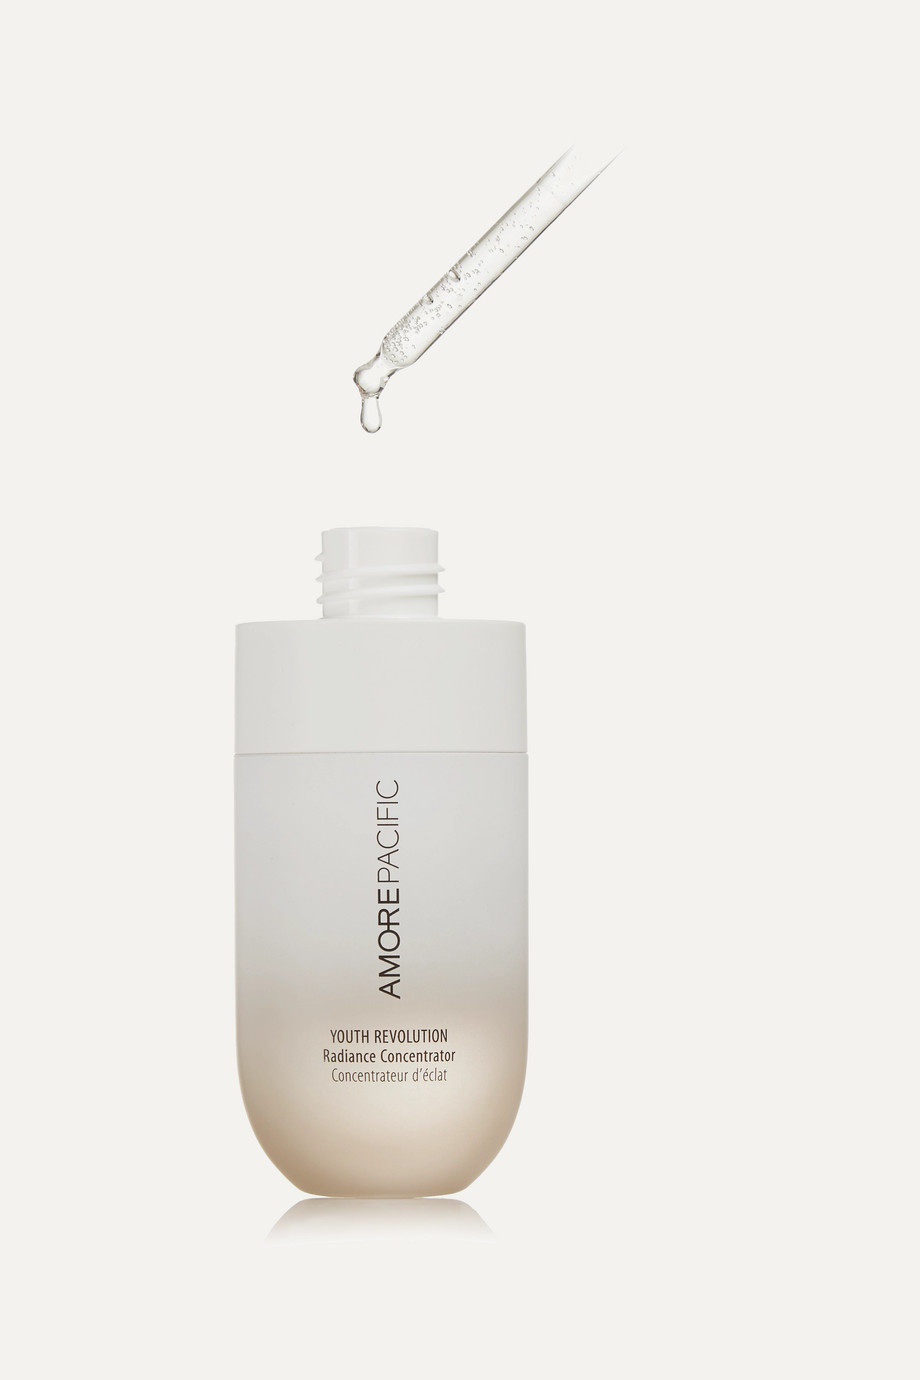 AMOREPACIFIC Youth Revolution Radiance Concentrator, 30ml